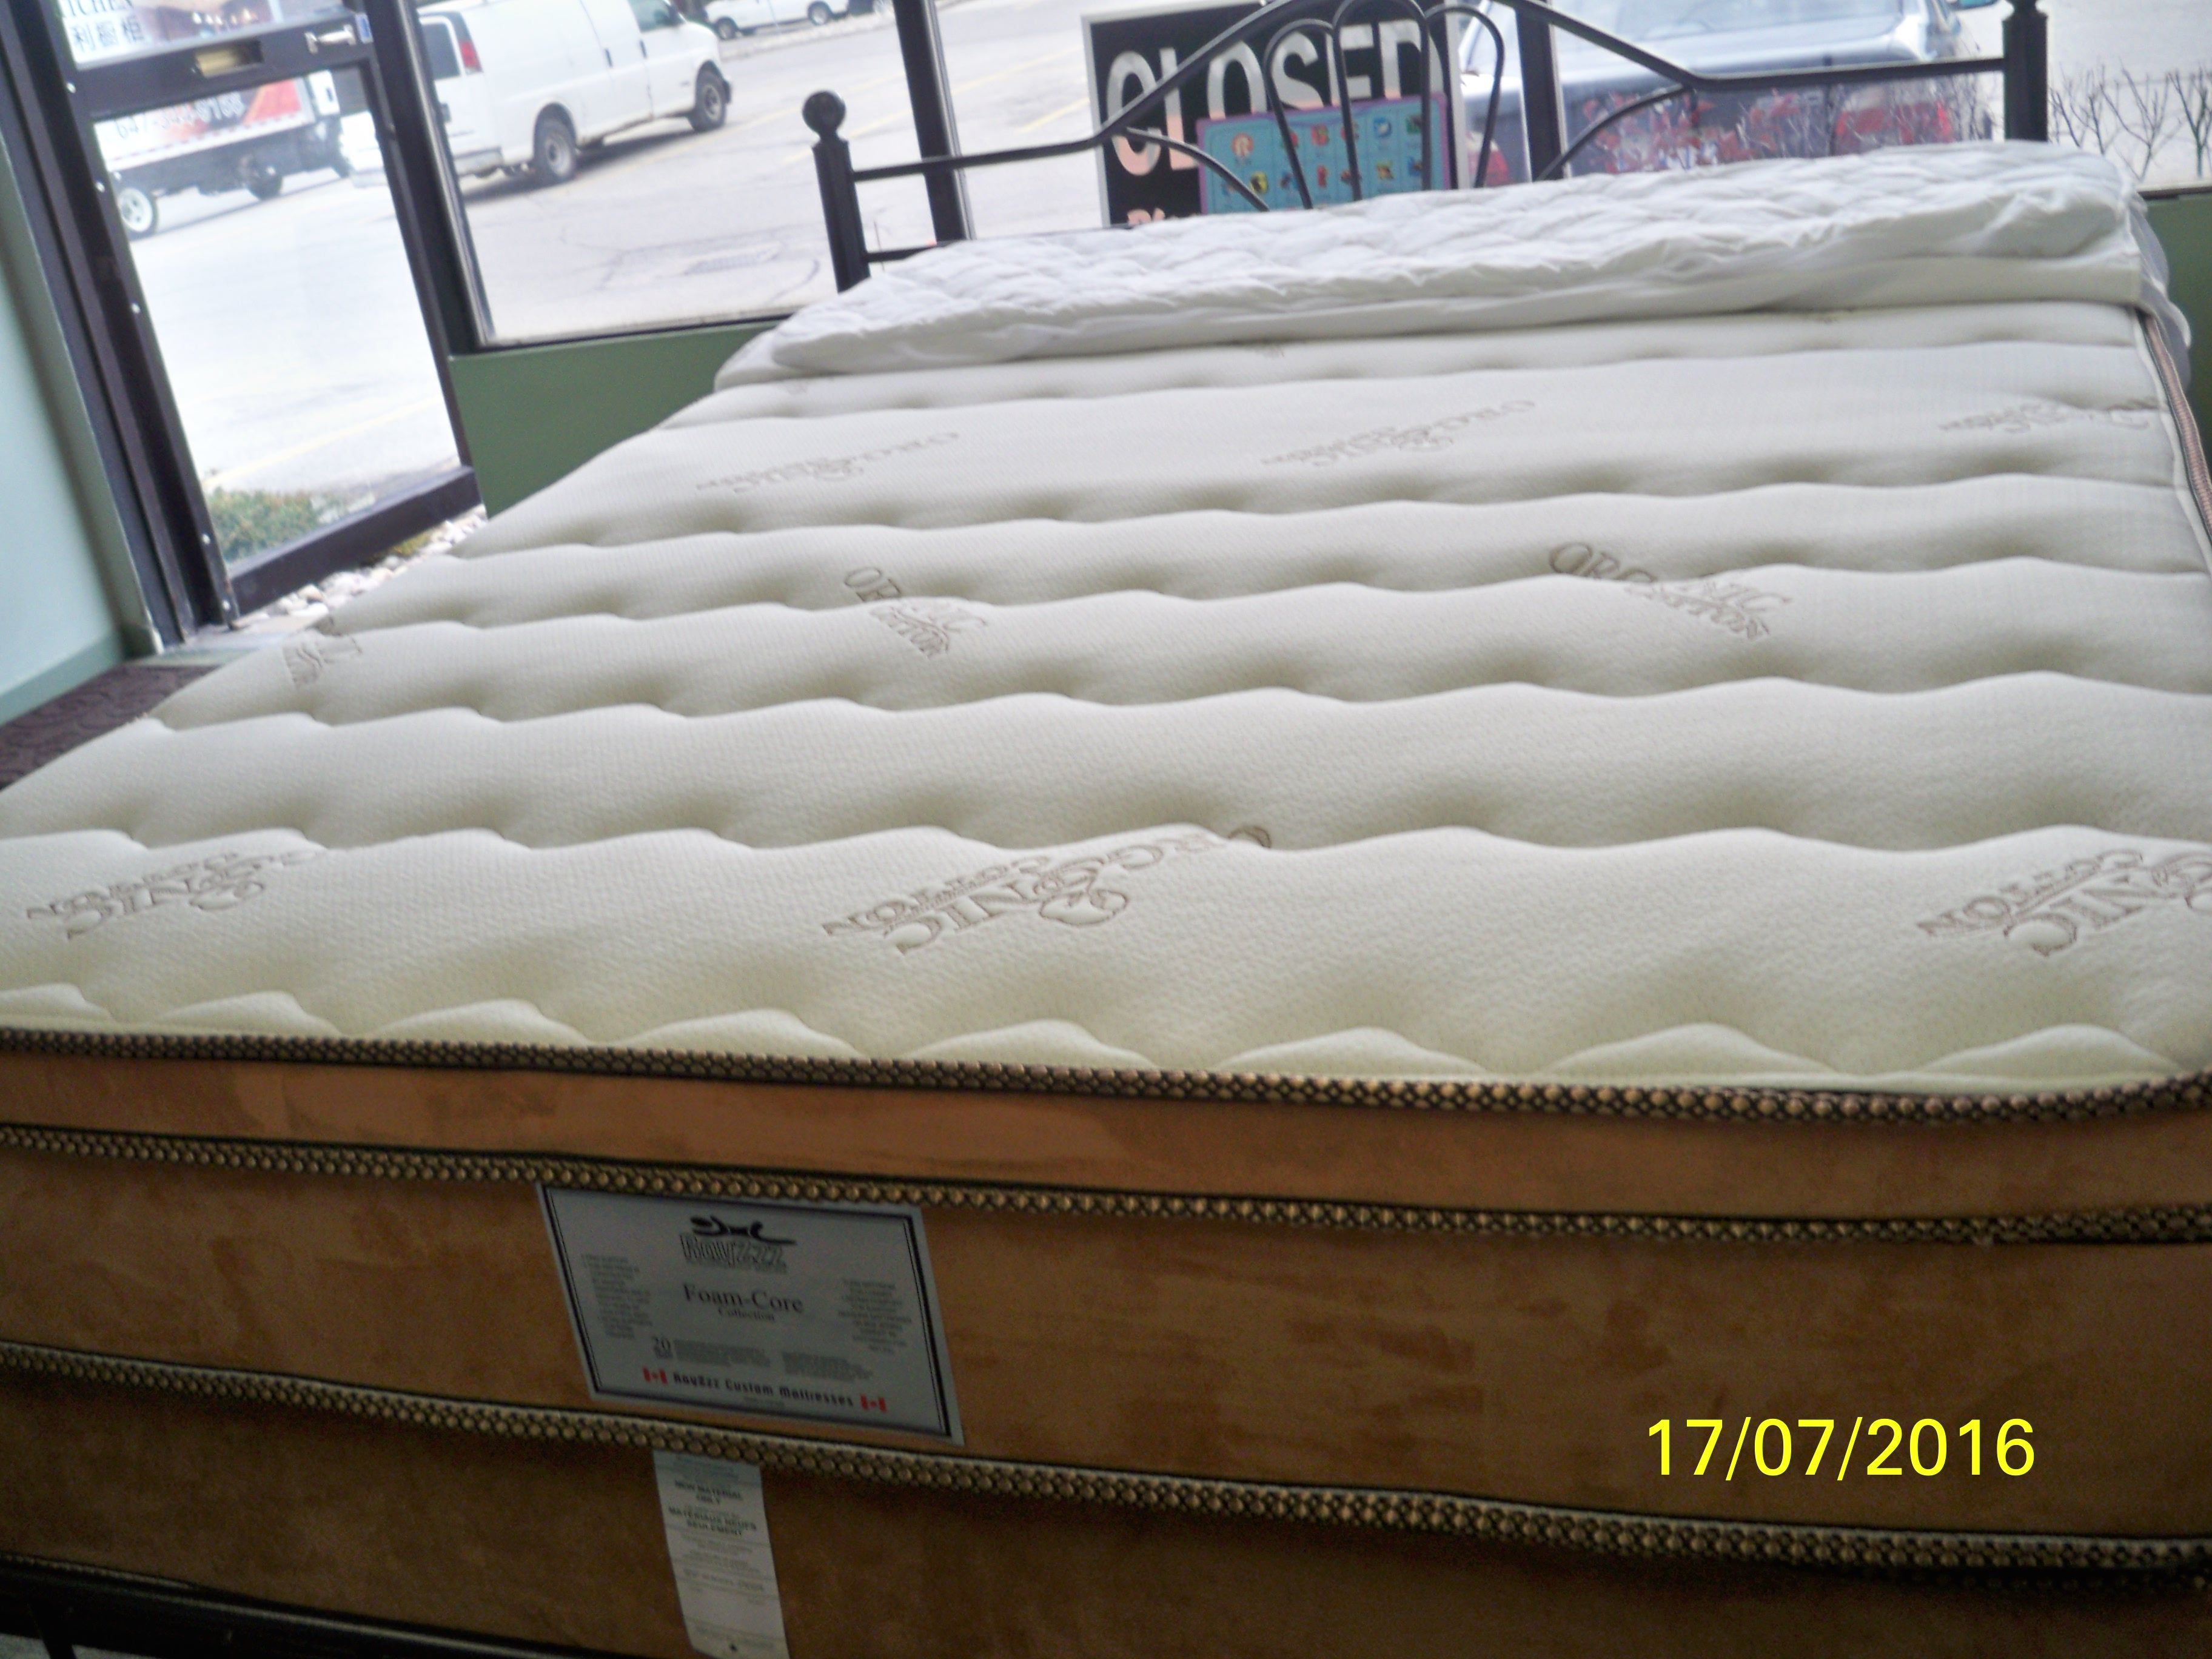 BUY MATTRESSES AND FURNITURE FROM RAYZzz CUSTOM MATTRESSES RAYZzz CUSTOM  MATTRESSES 31 PROGRESS AVE UNIT 24